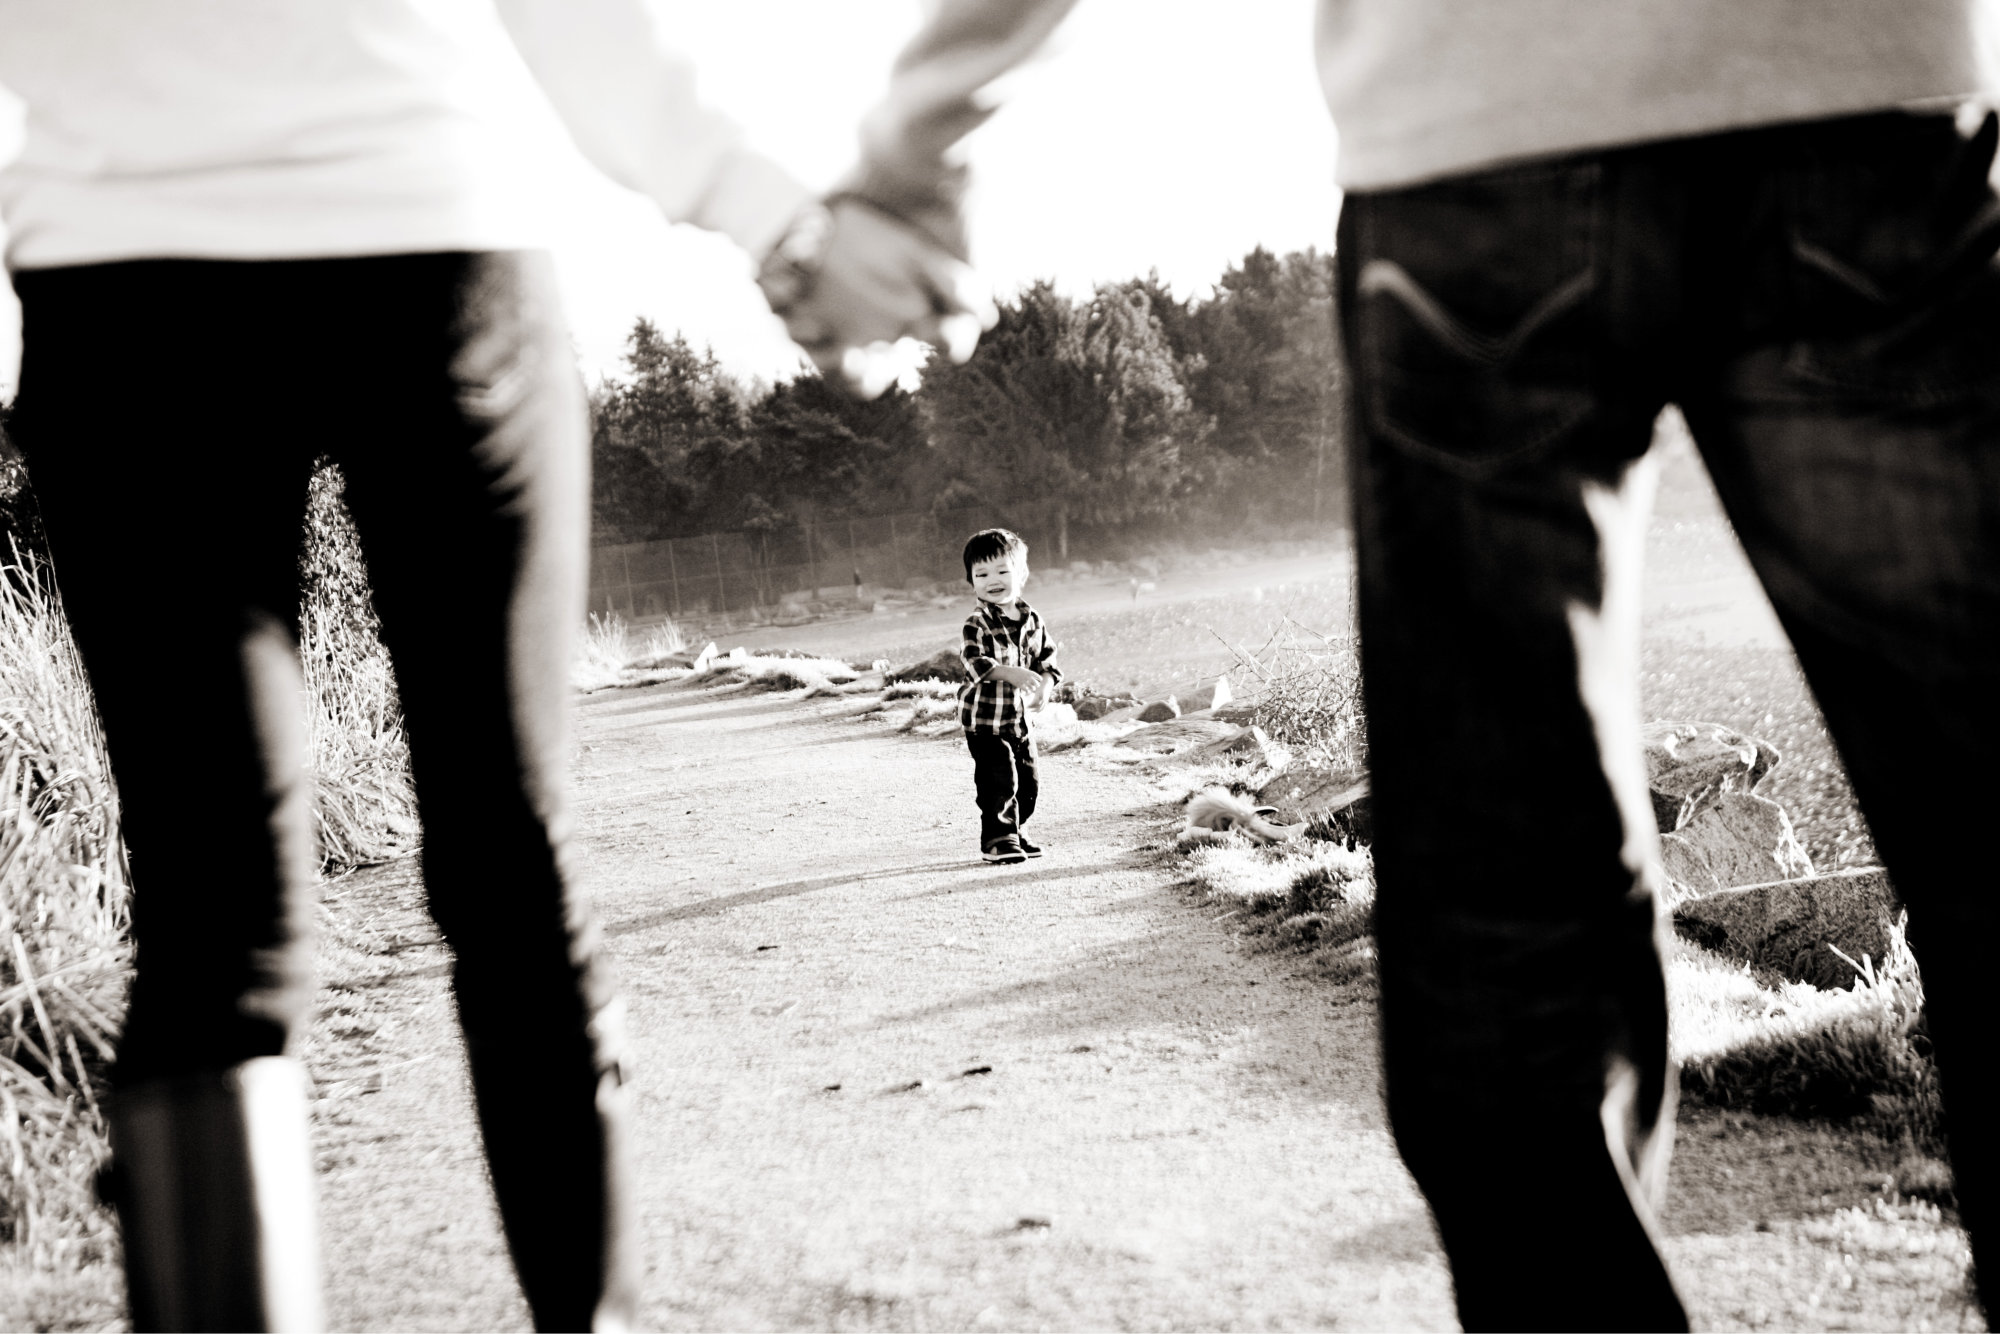 Slider 1 - boy with parents holding hands